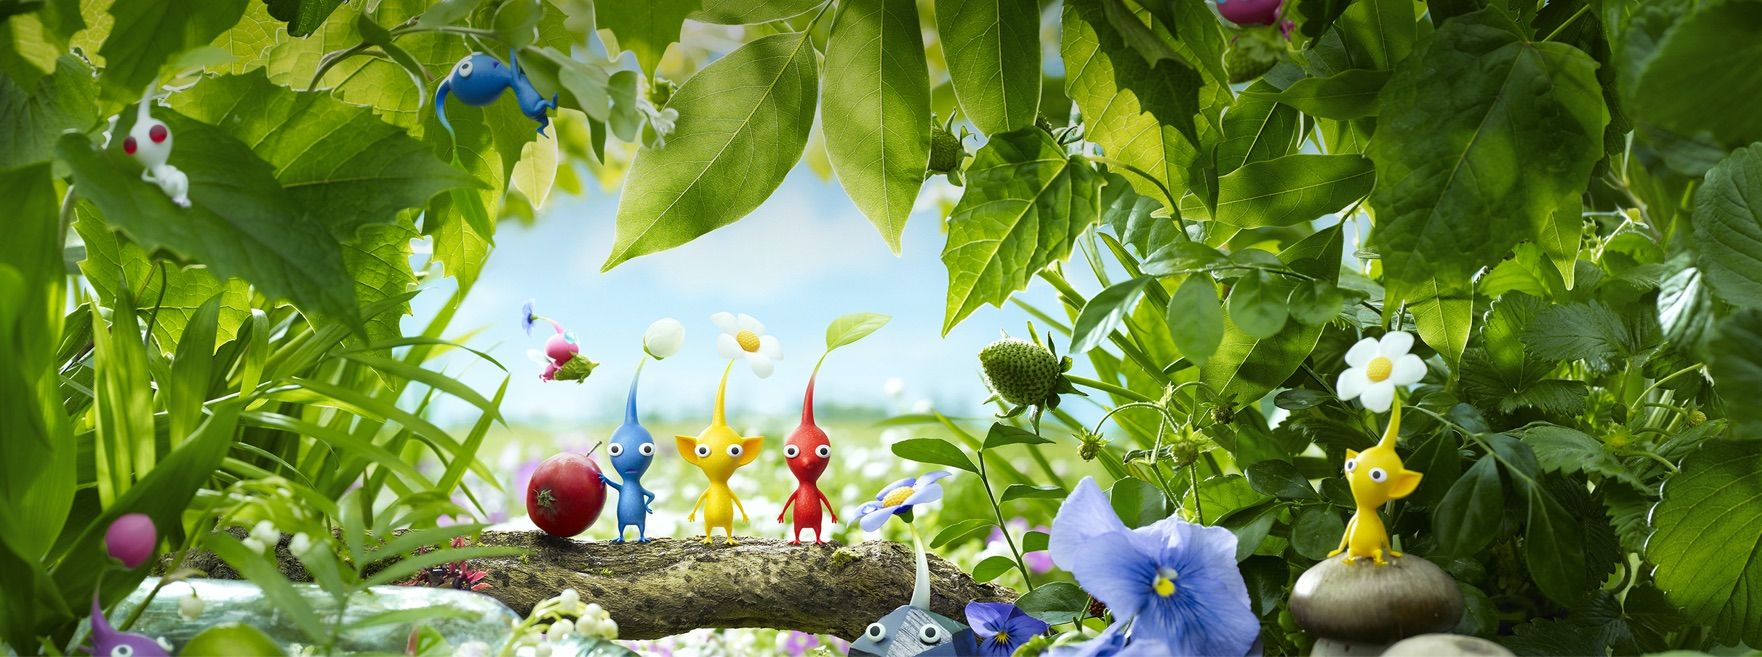 Pikmin 3 Deluxe Release Date Revealed In New Nintendo Switch Trailer Collider